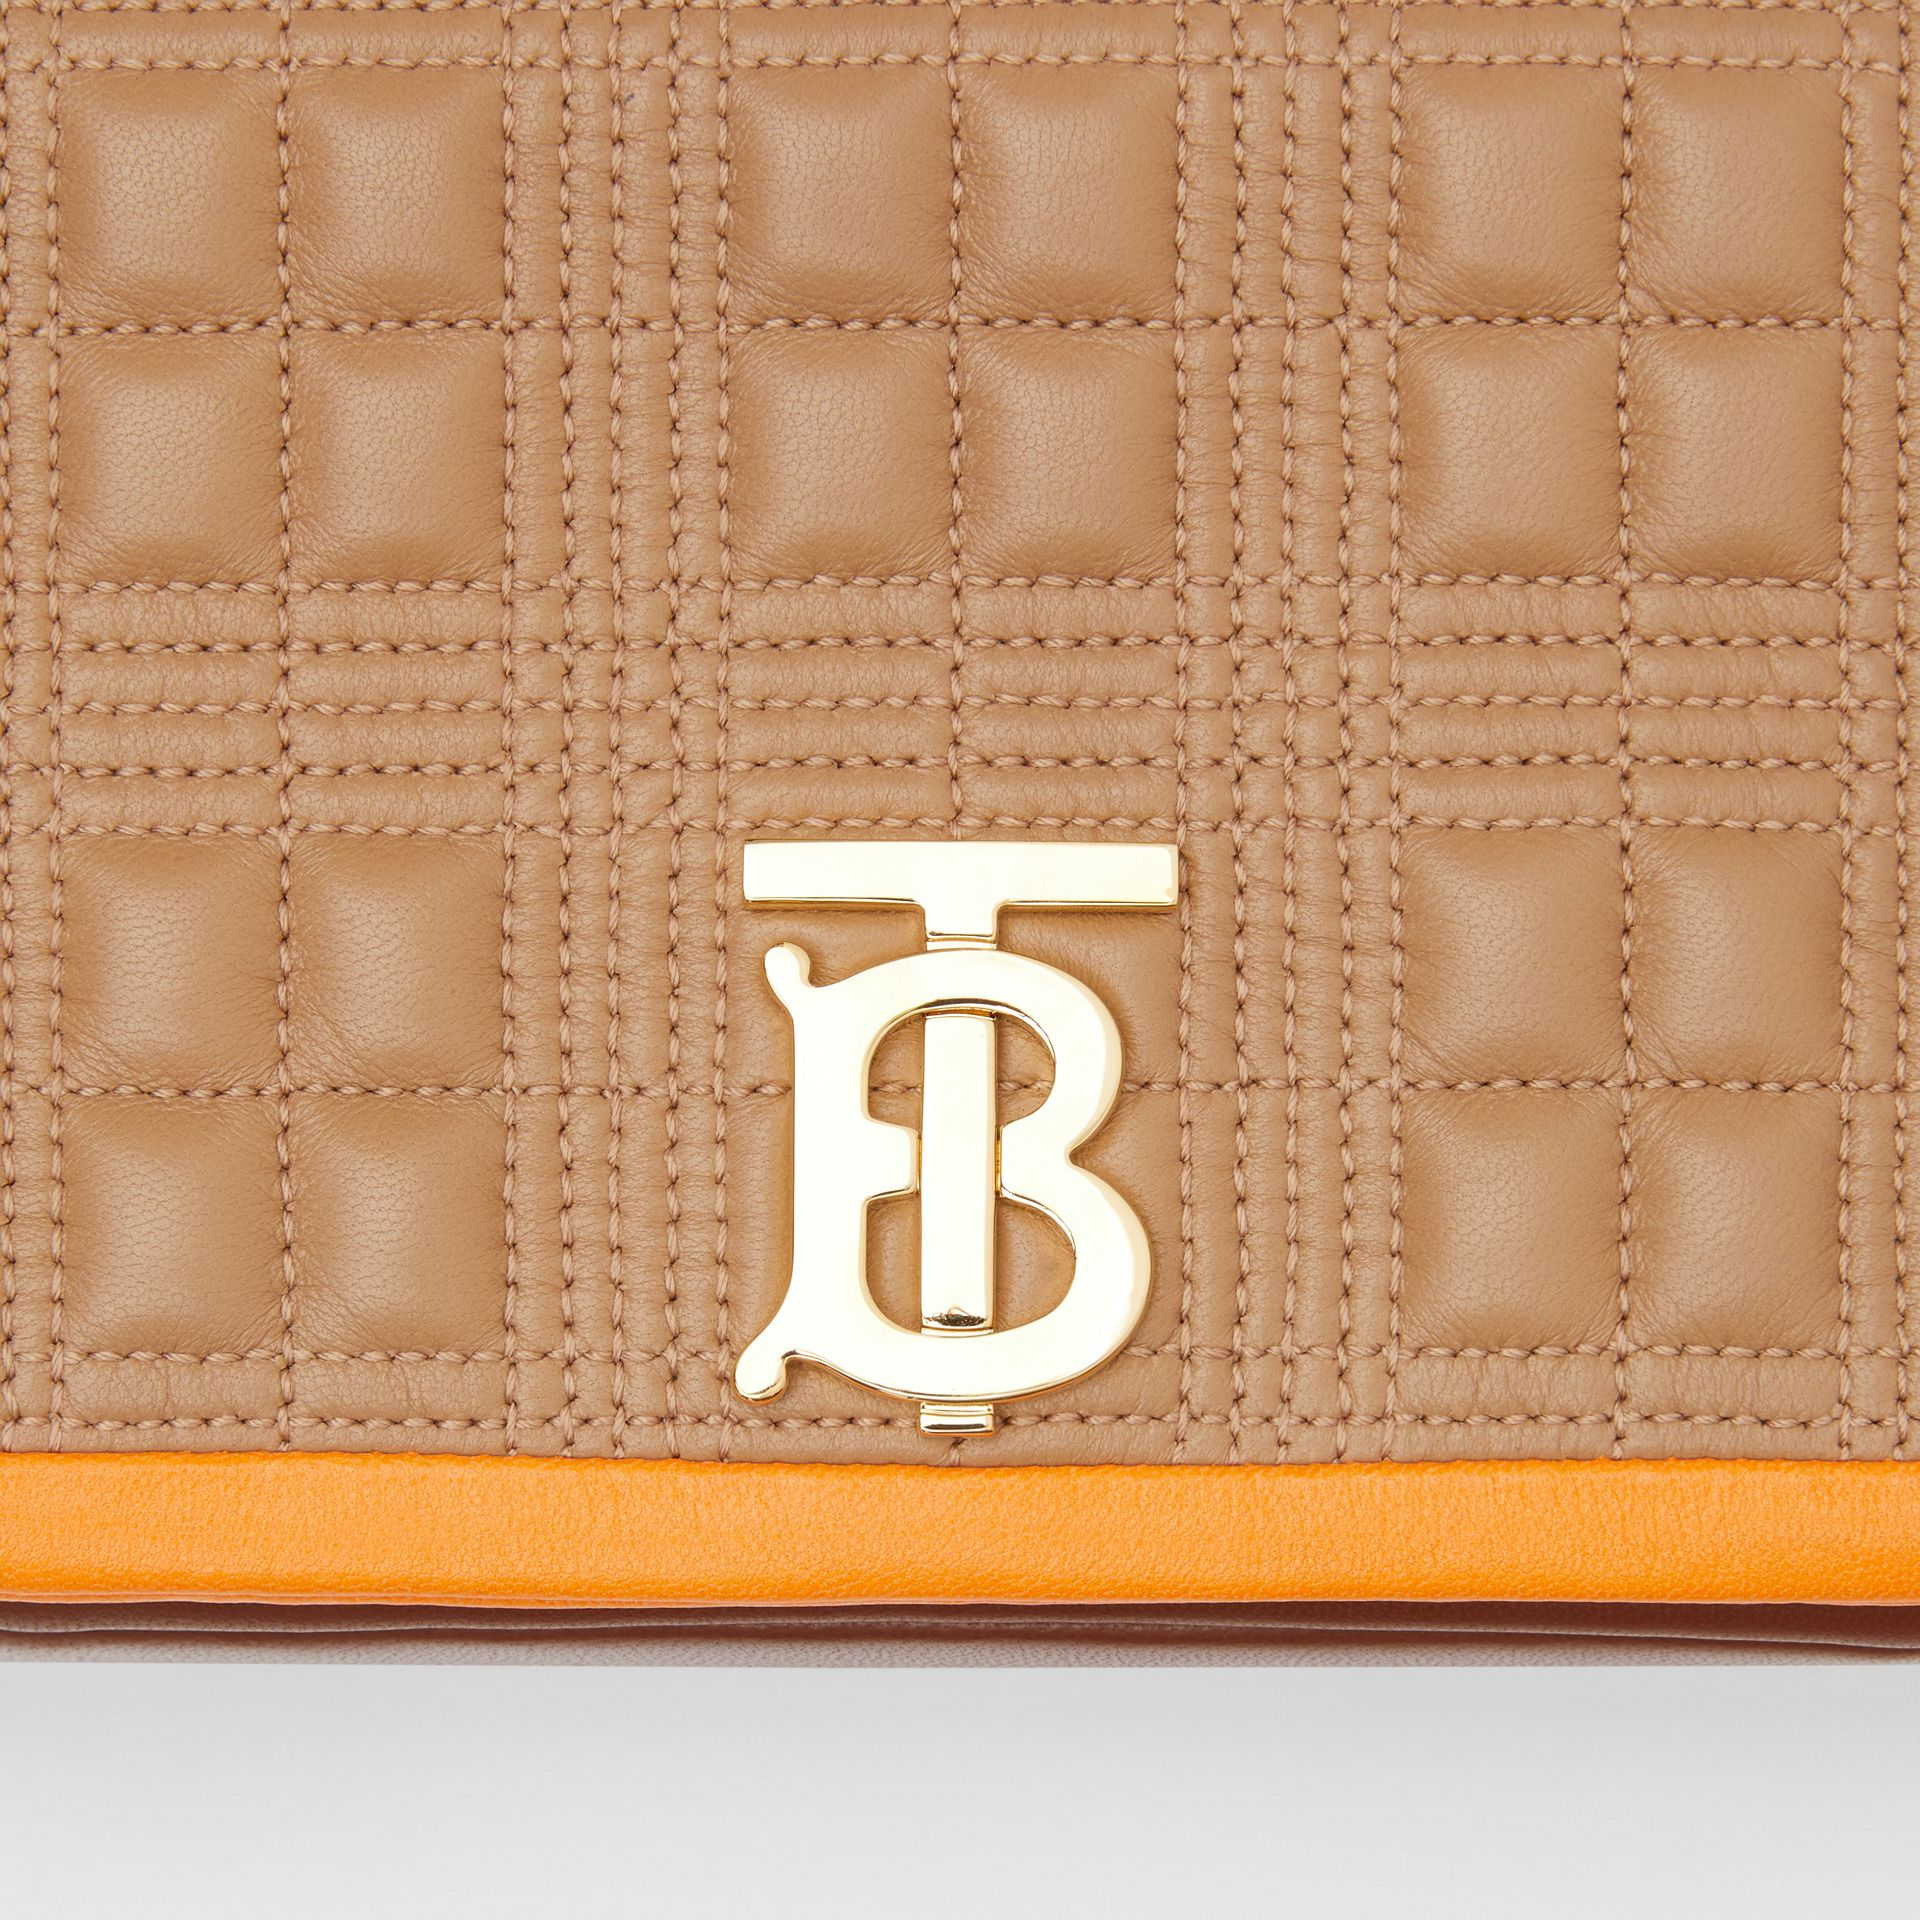 Small Quilted Tri-tone Lambskin Lola Bag in Camel/bright Orange - Women | Burberry - gallery image 1